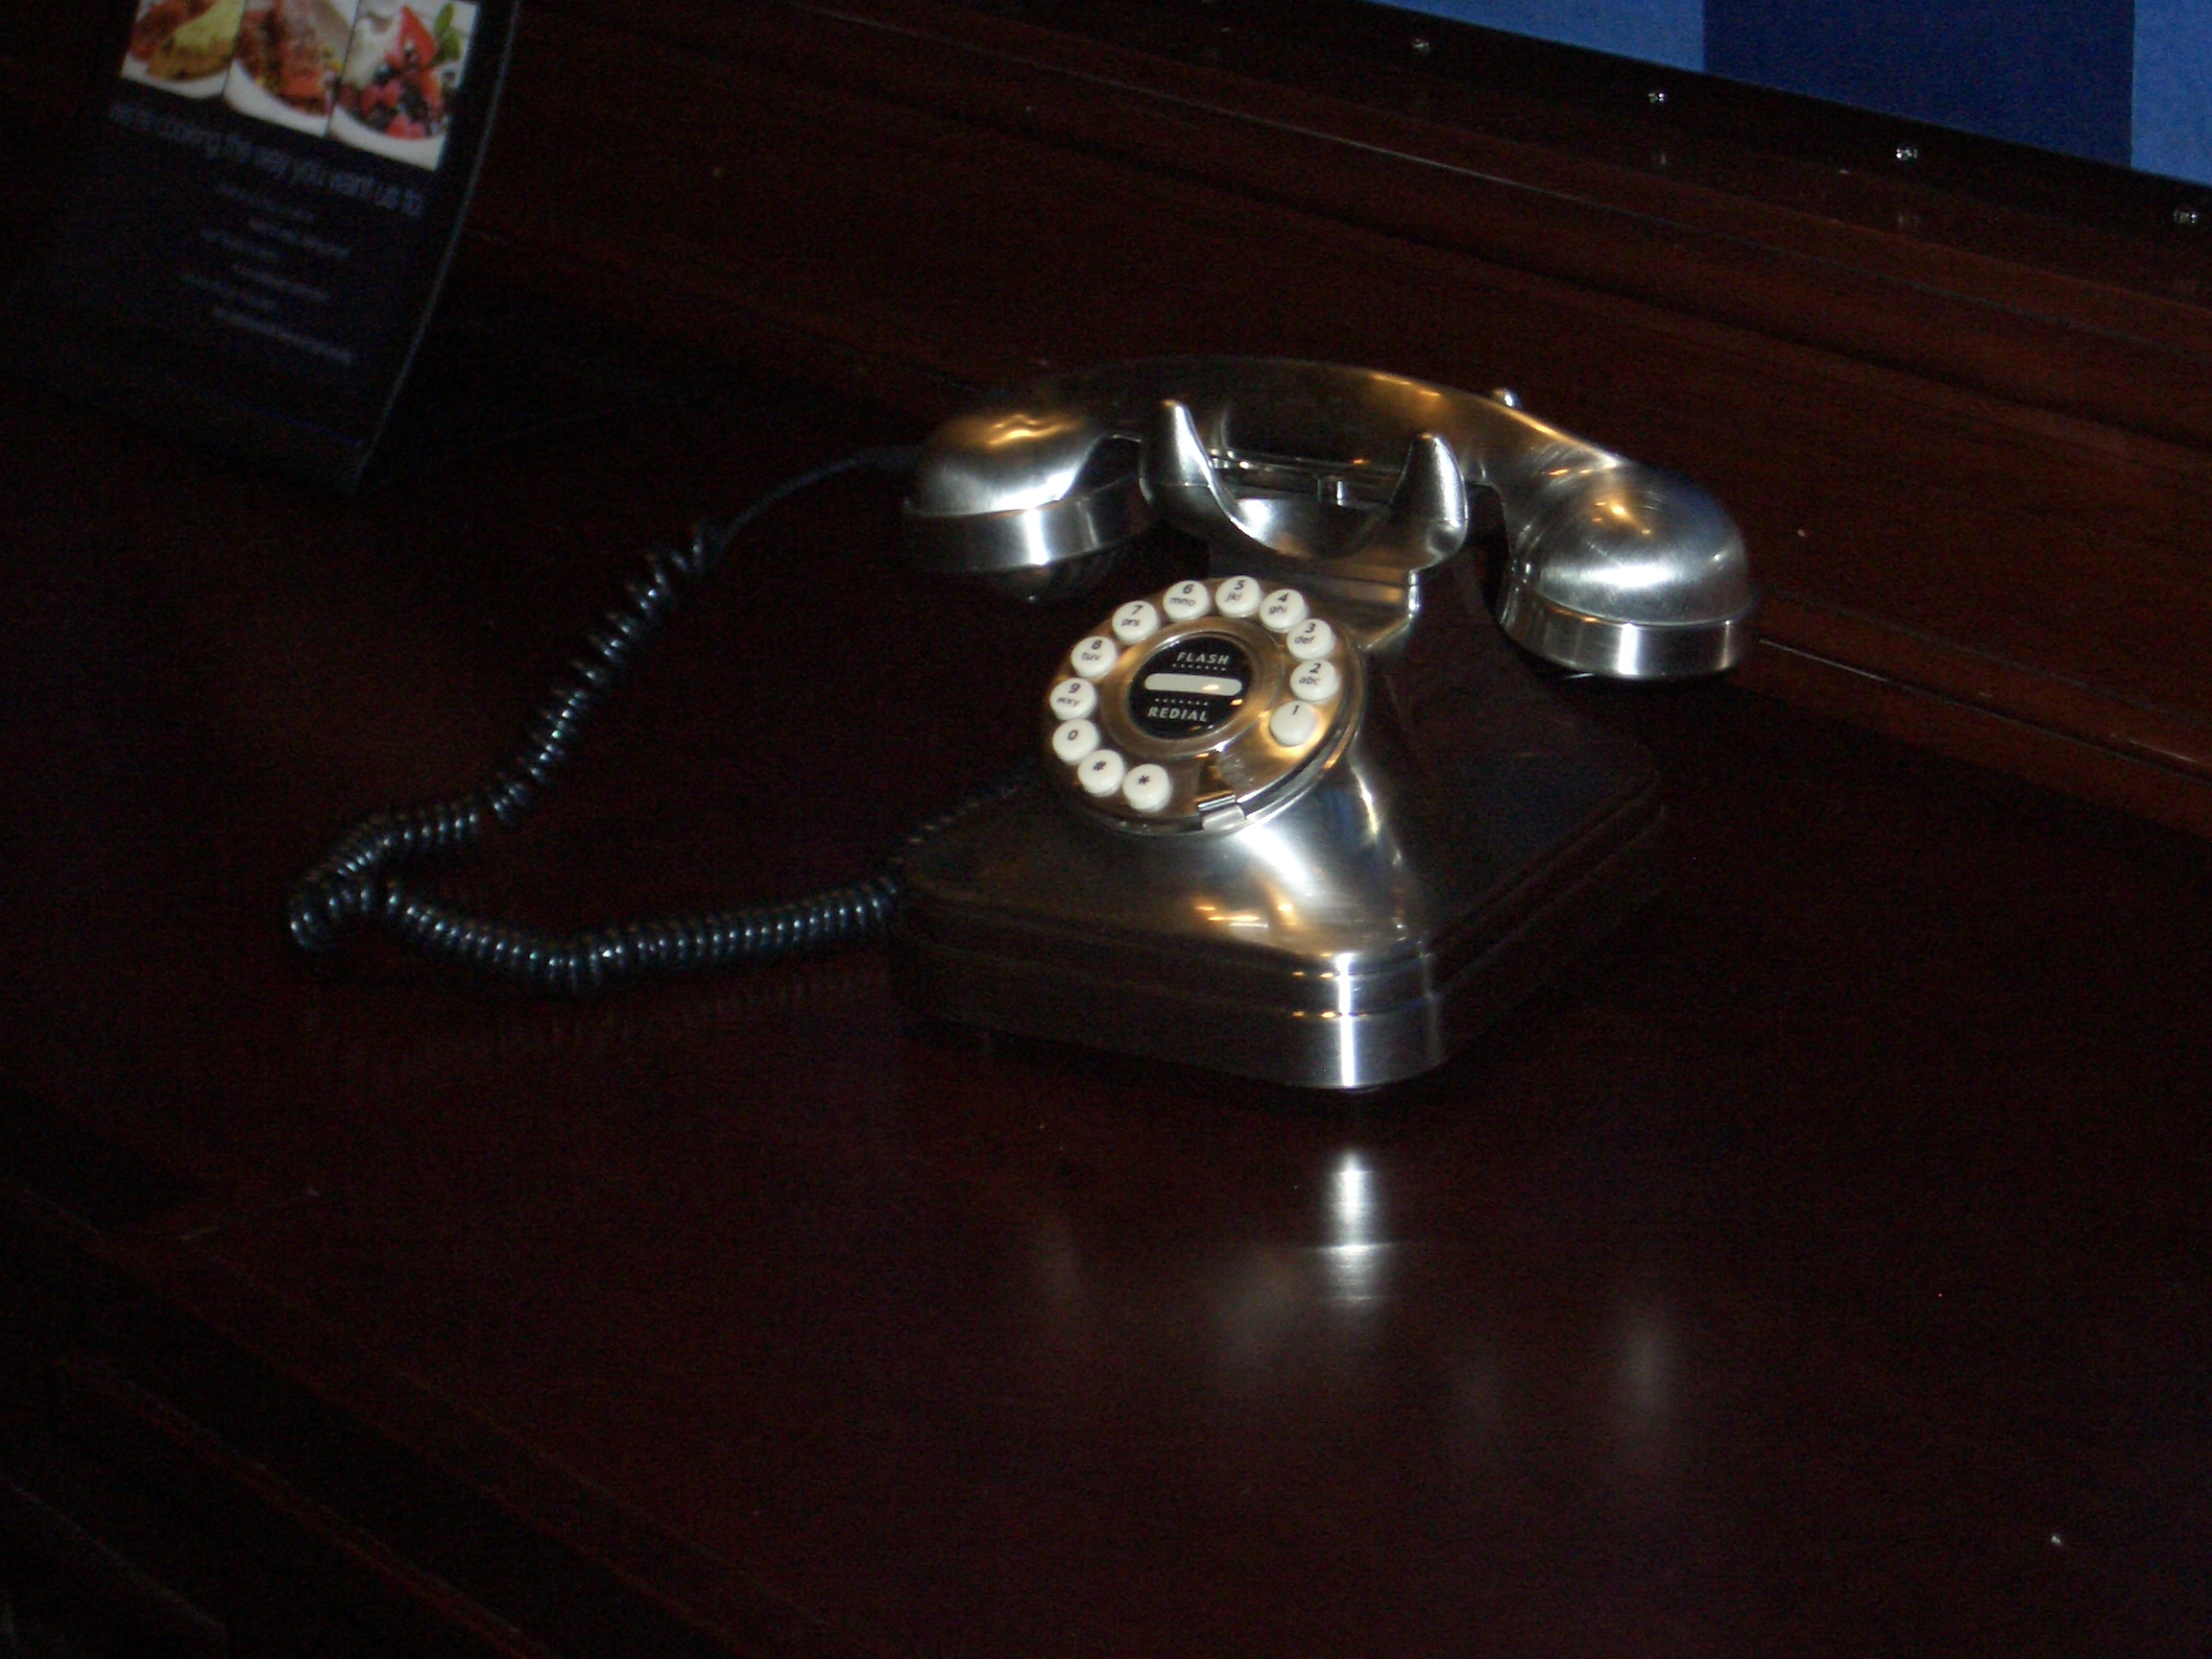 [Picture: Old-fashioned telephone]